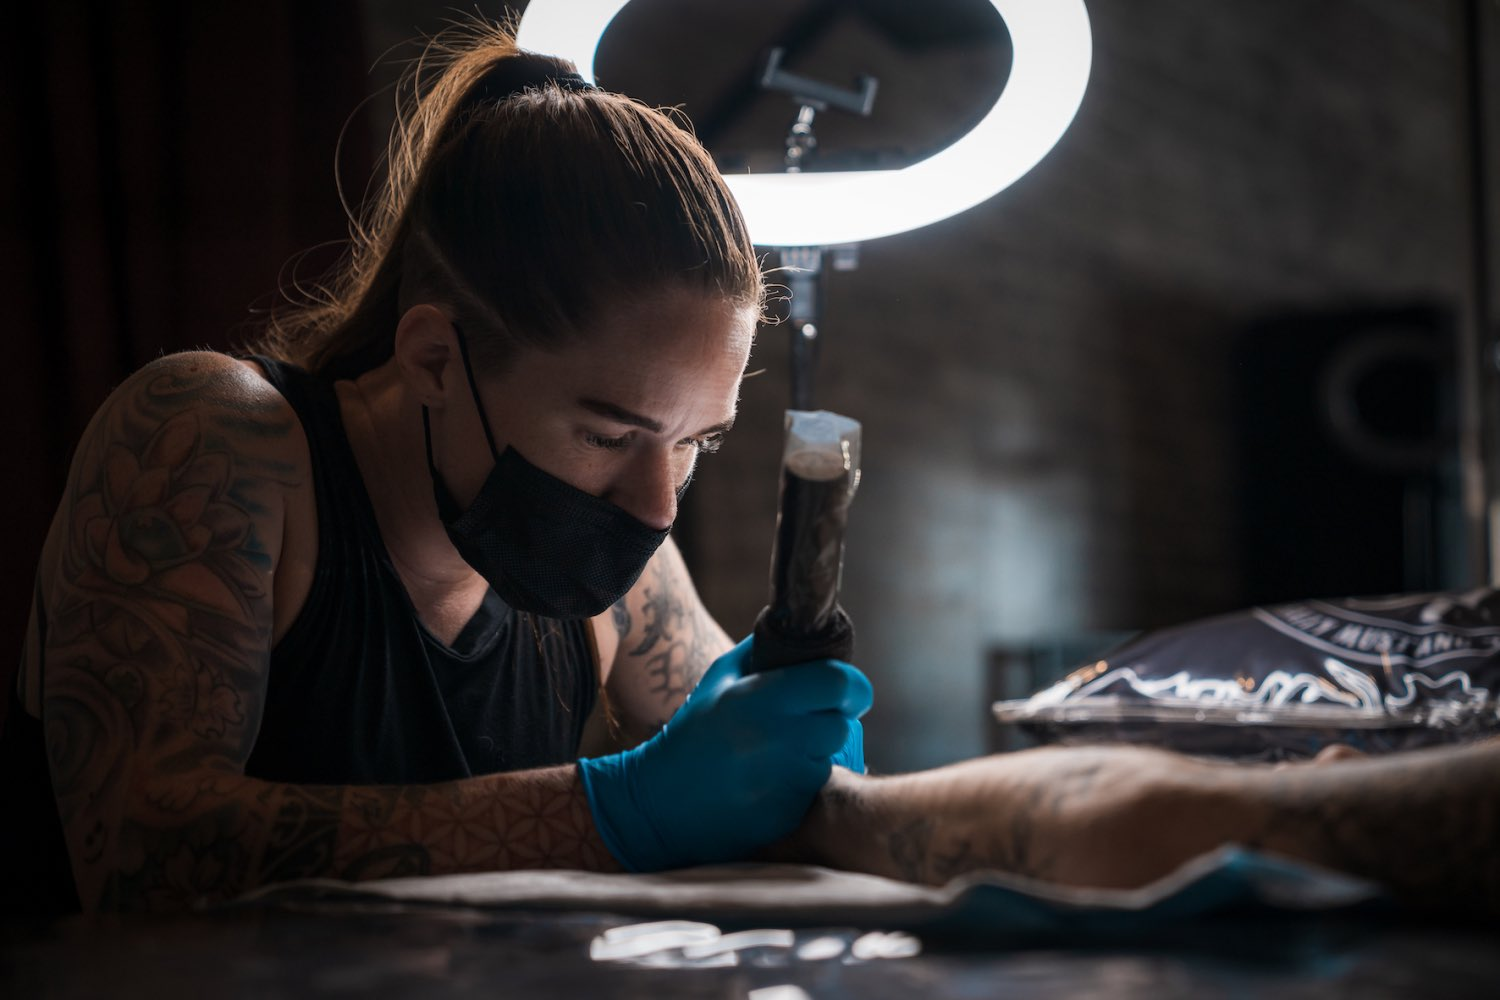 Tory Sutherland-Dadds tattooing a client at Sally Mustang Tattoos